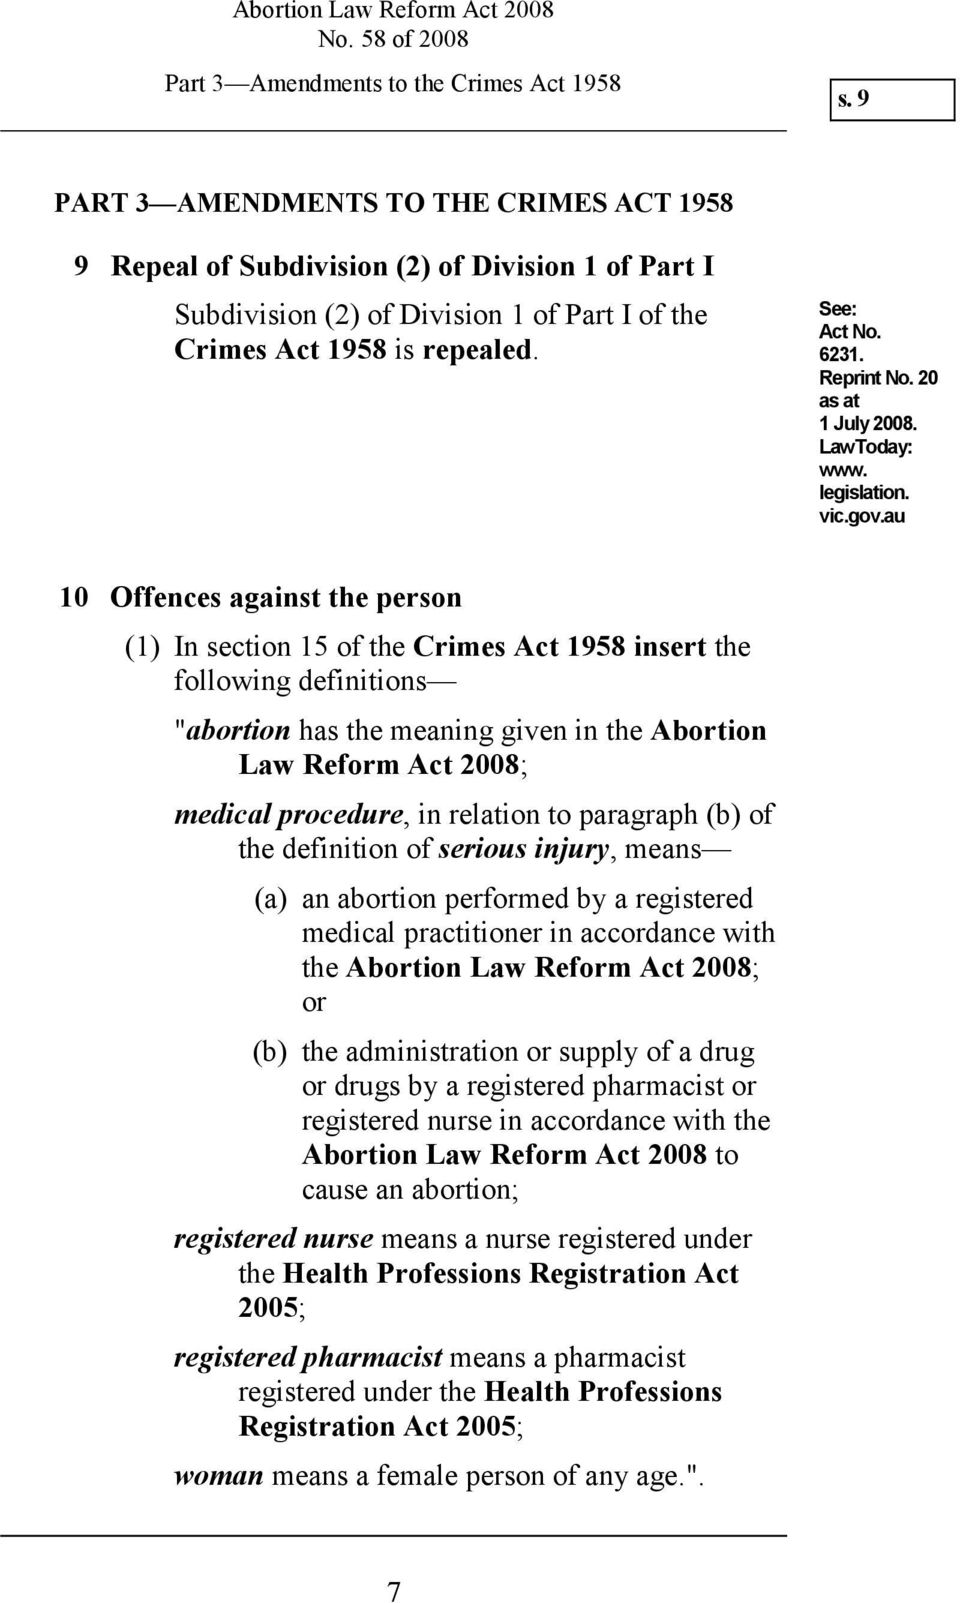 Reprint No. 20 as at 1 July 2008. LawToday: www. legislation. vic.gov.